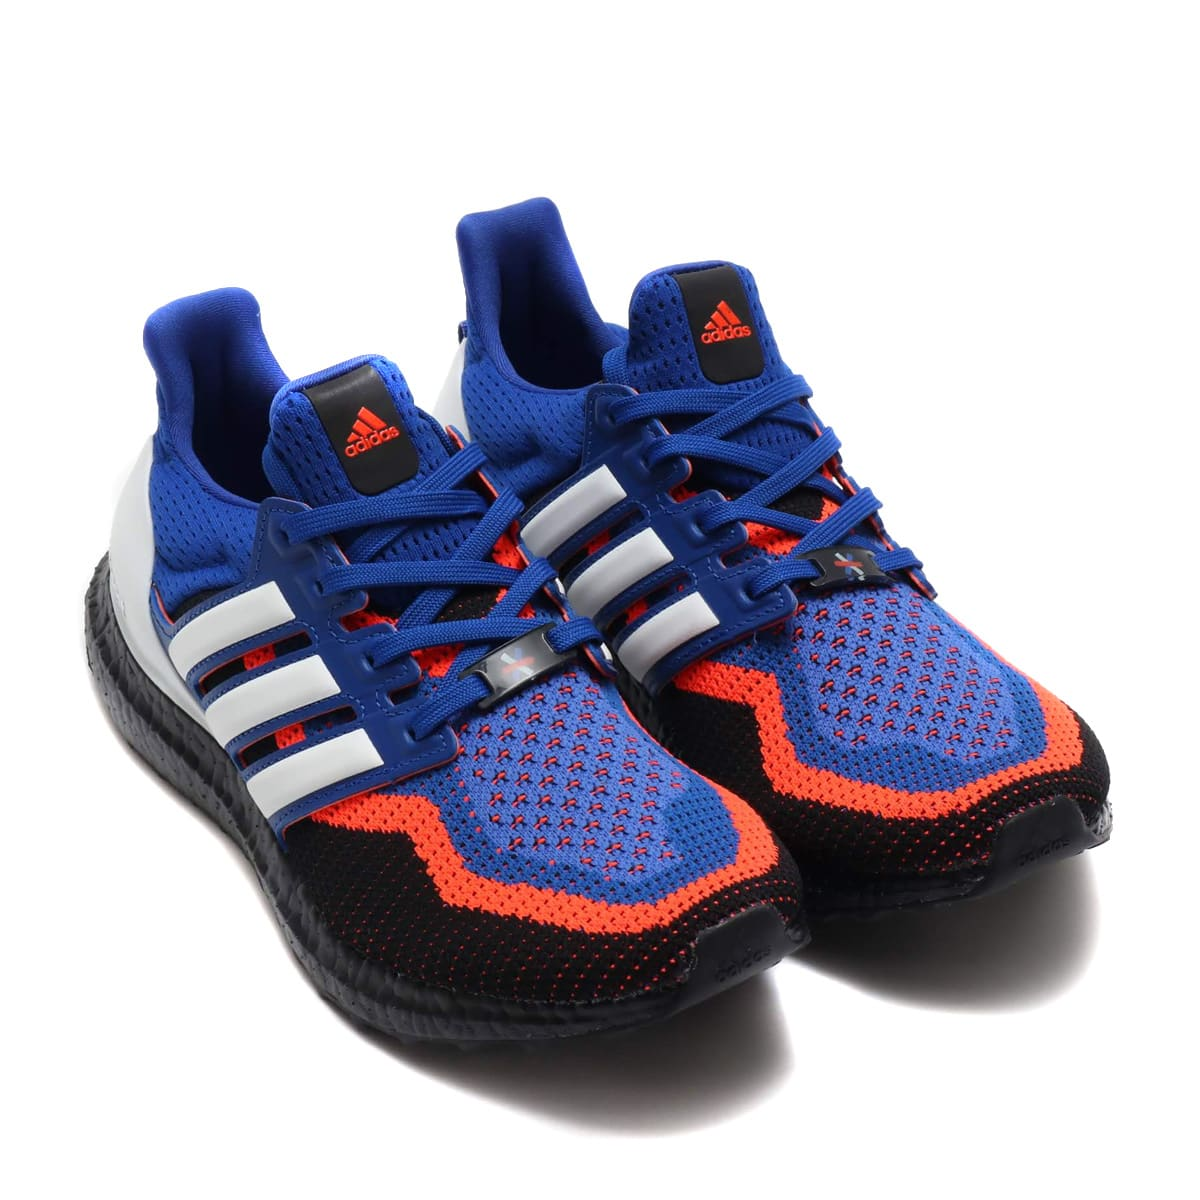 adidas UltraBOOST COLLEGIATE ROYAL/FTWR WHITE/SOLAR RED 19SS-I_photo_large